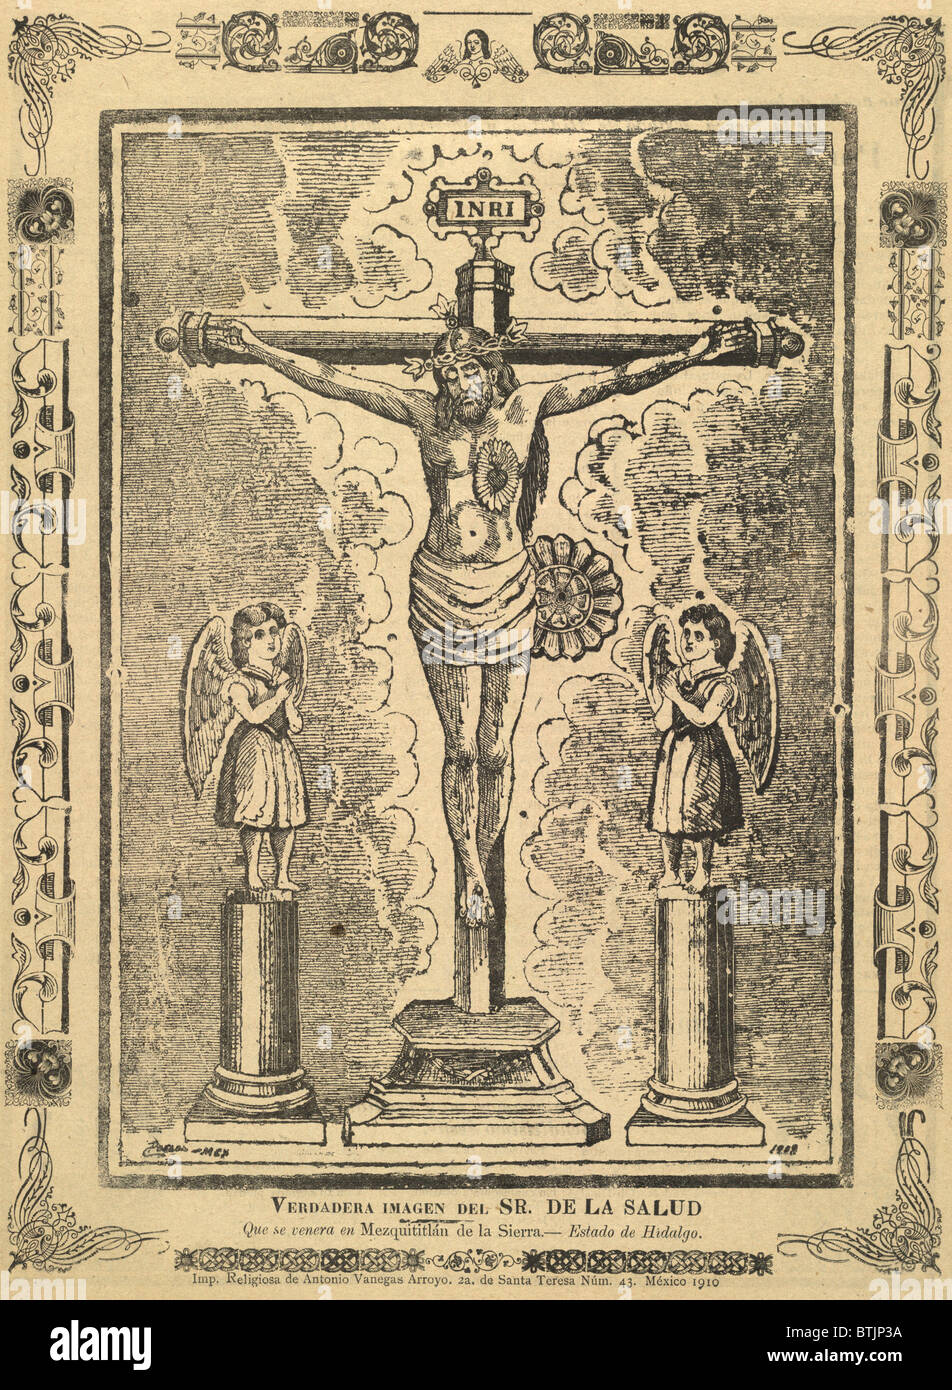 """Jesus Christ, broadside depicting a crucifix flanked by statues of angels, titled: """"True Image of Our Lord of Health Stock Photo"""